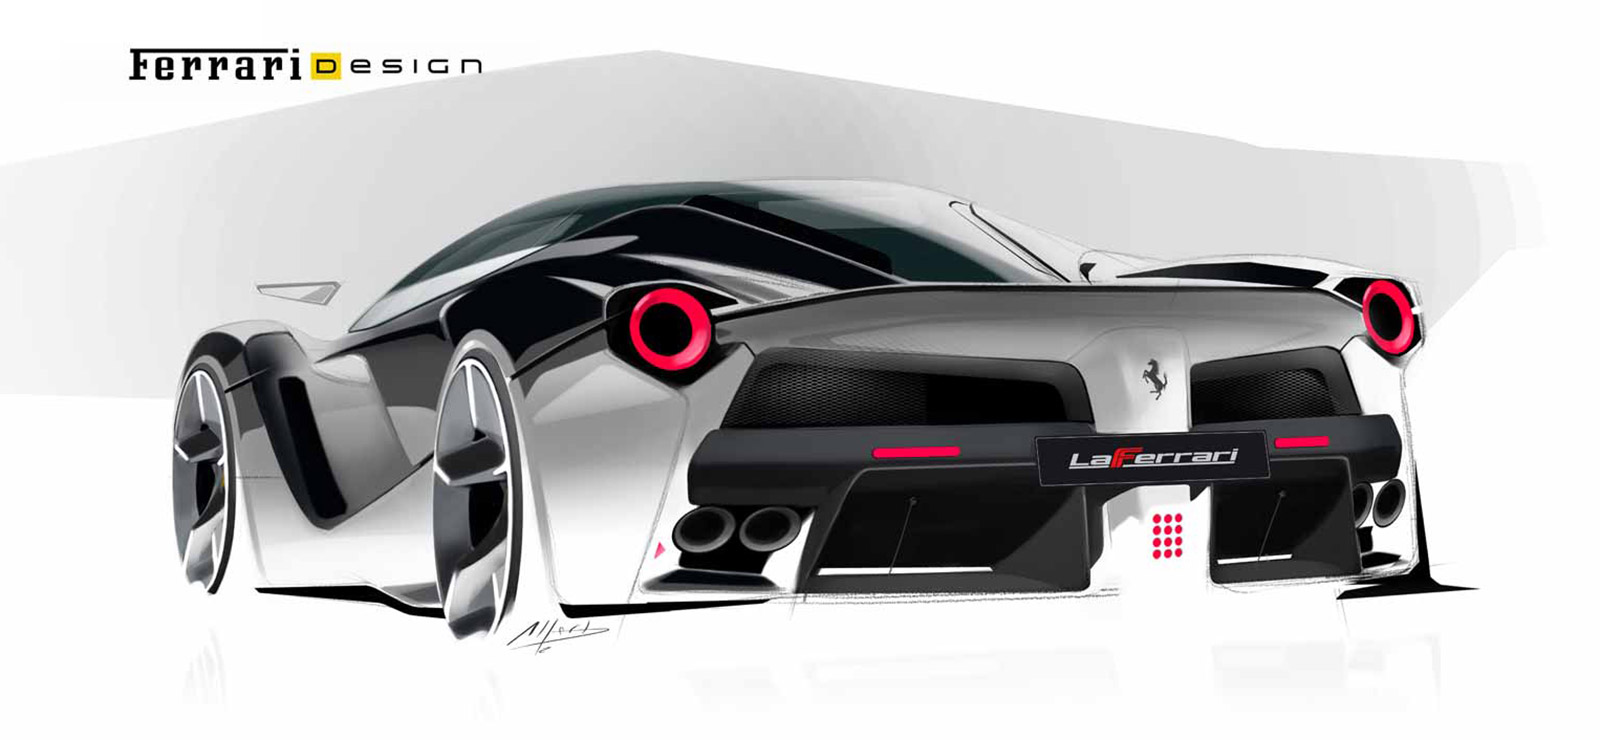 LaFerrari-Design-Sketch-03.jpg